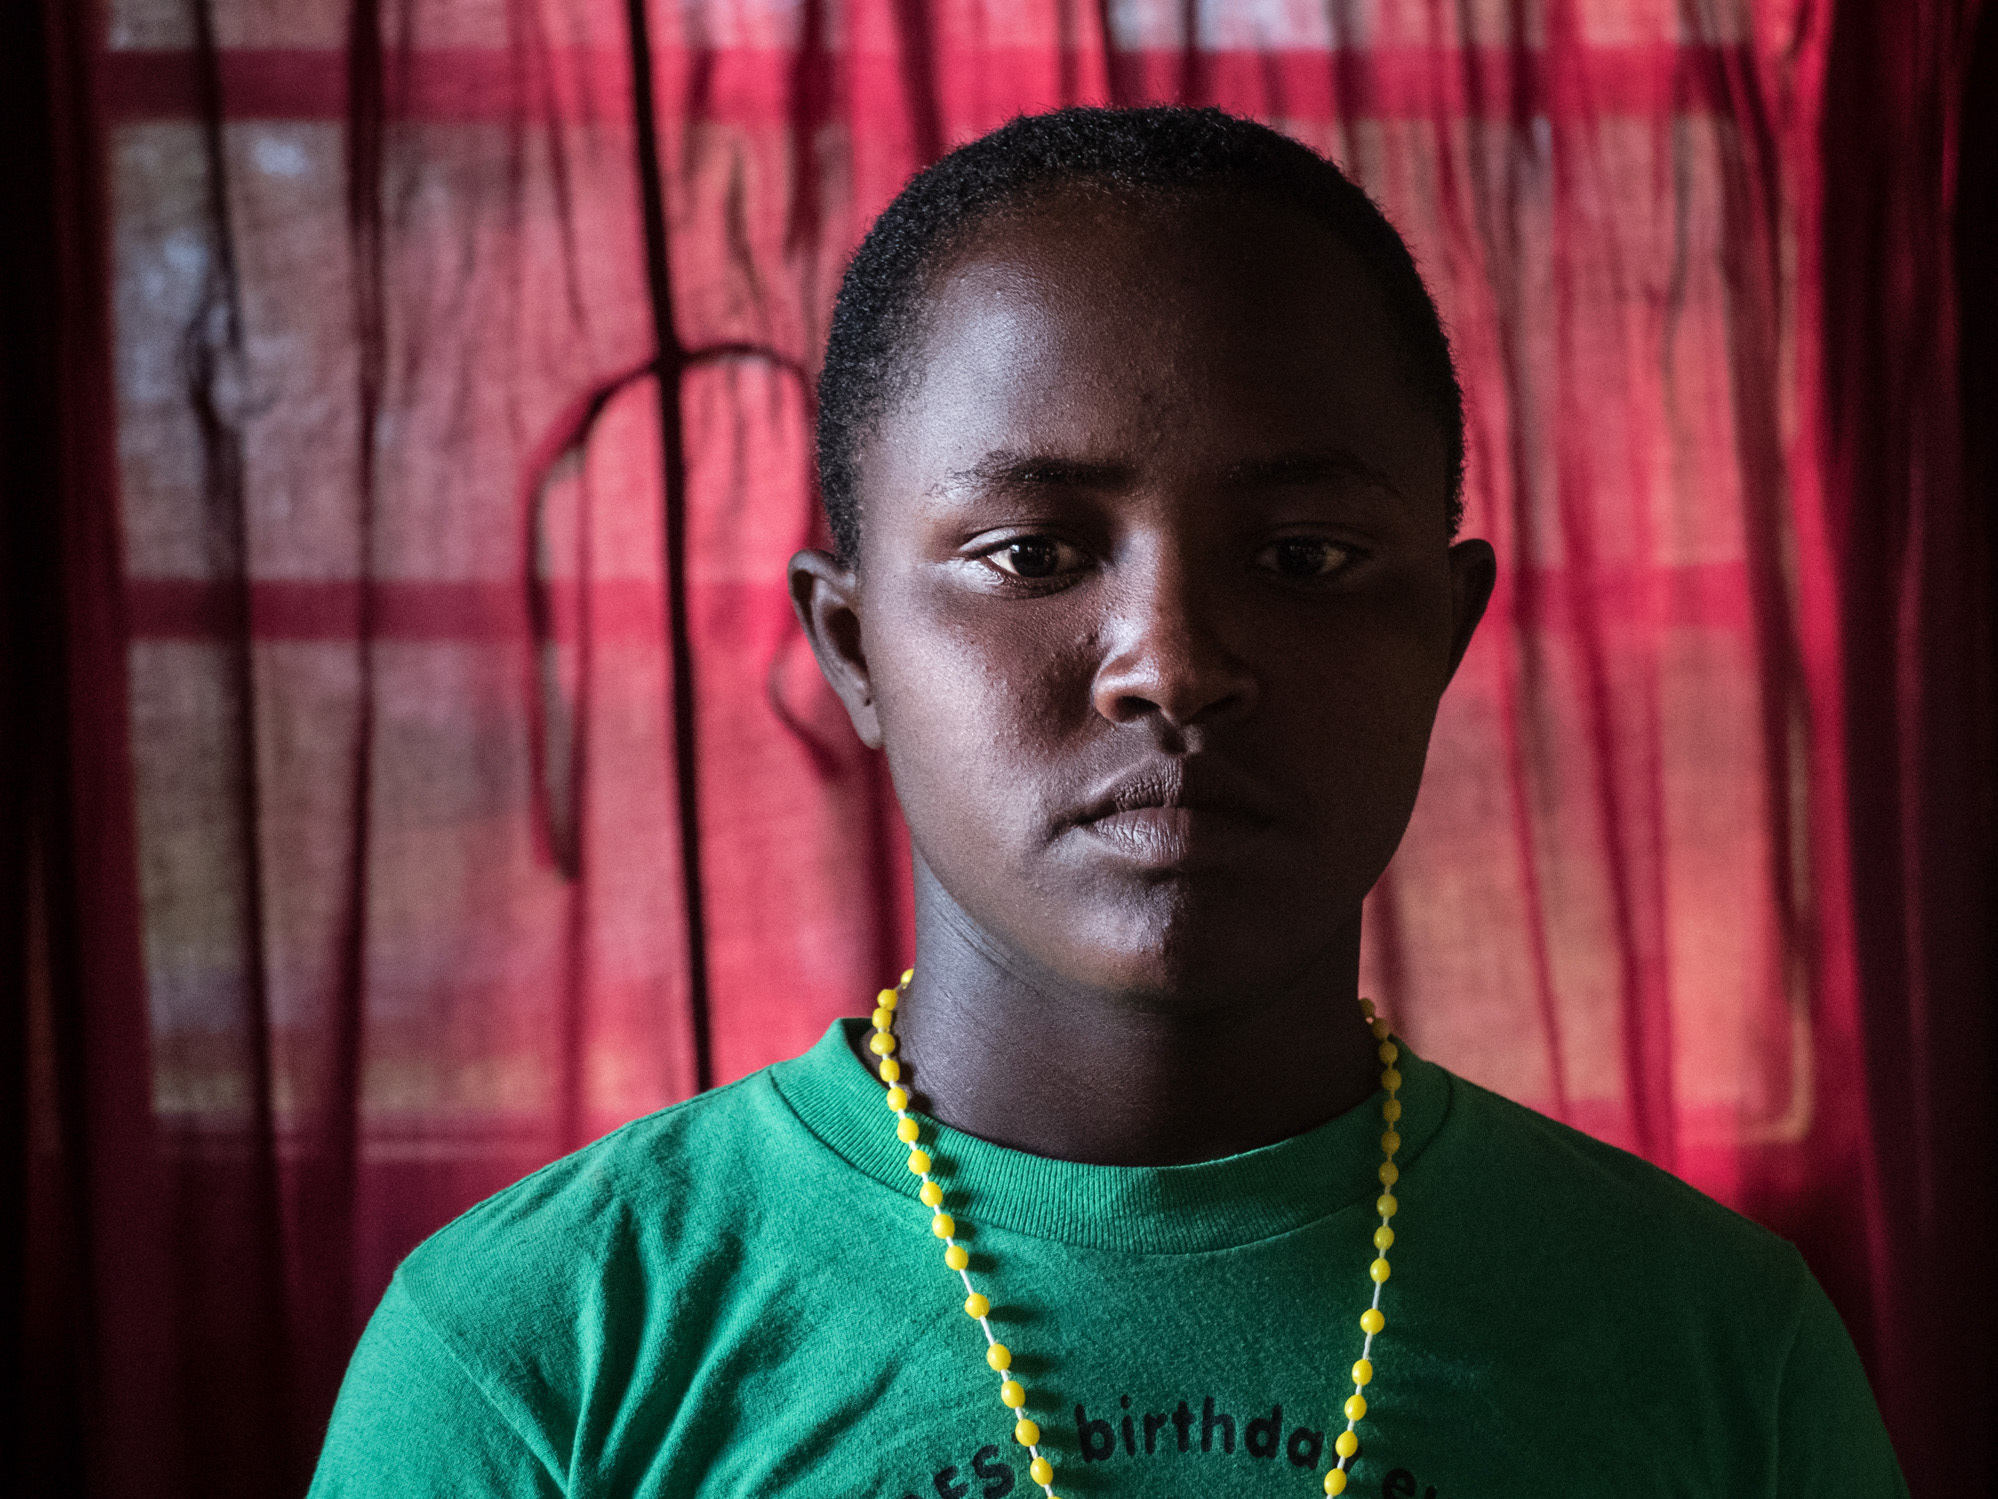 A Photographer Gives Cameras To Child Brides. Their Images Are Amazing